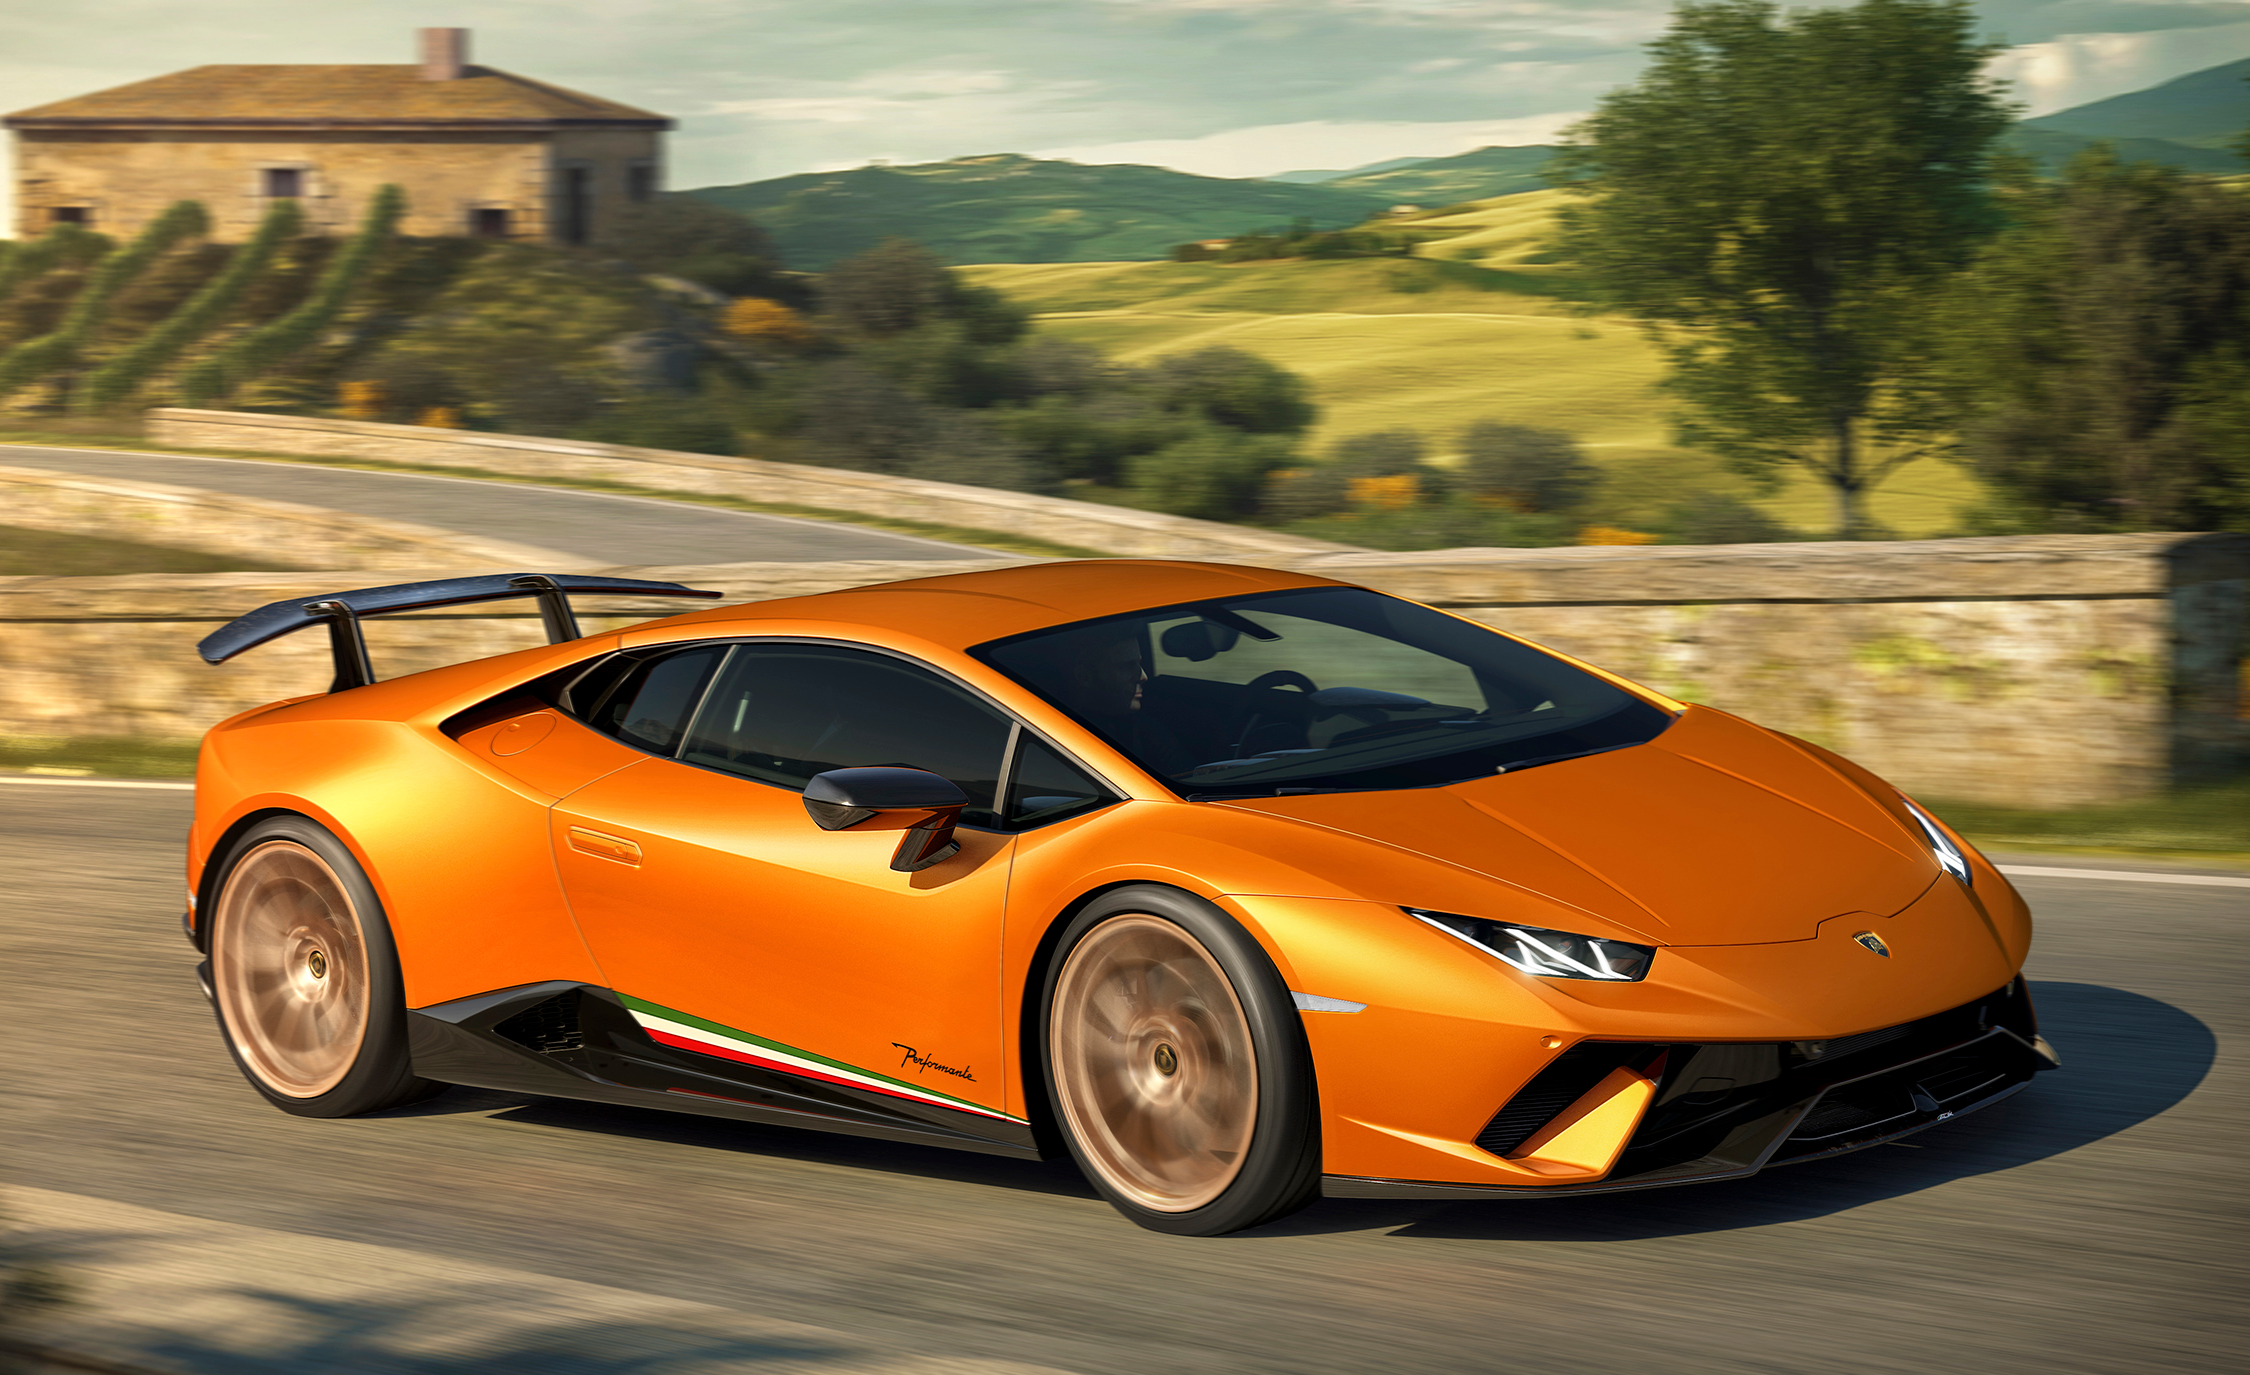 2020 lamborghini huracán reviews | lamborghini huracán price, photos